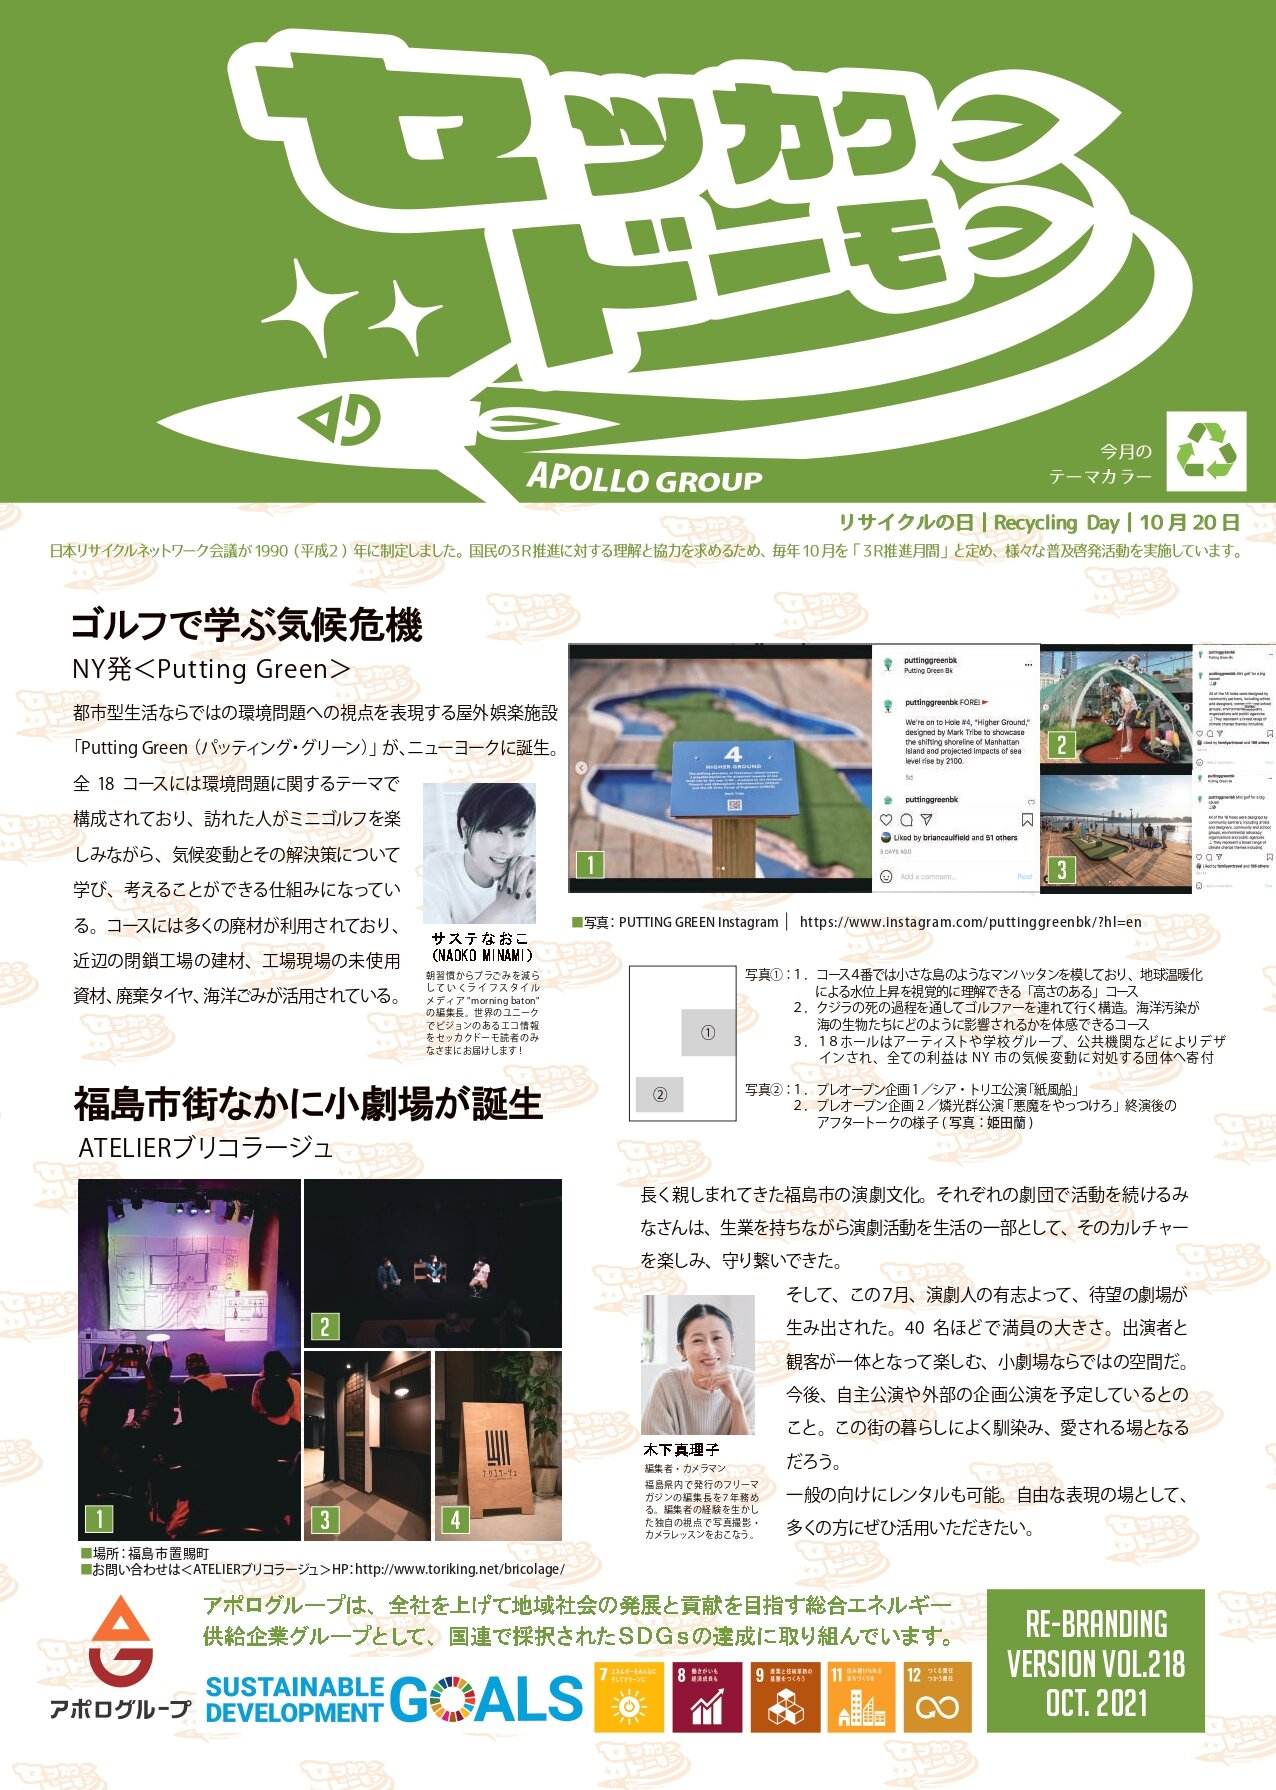 SD218-最新_compressed_page-0001.jpg